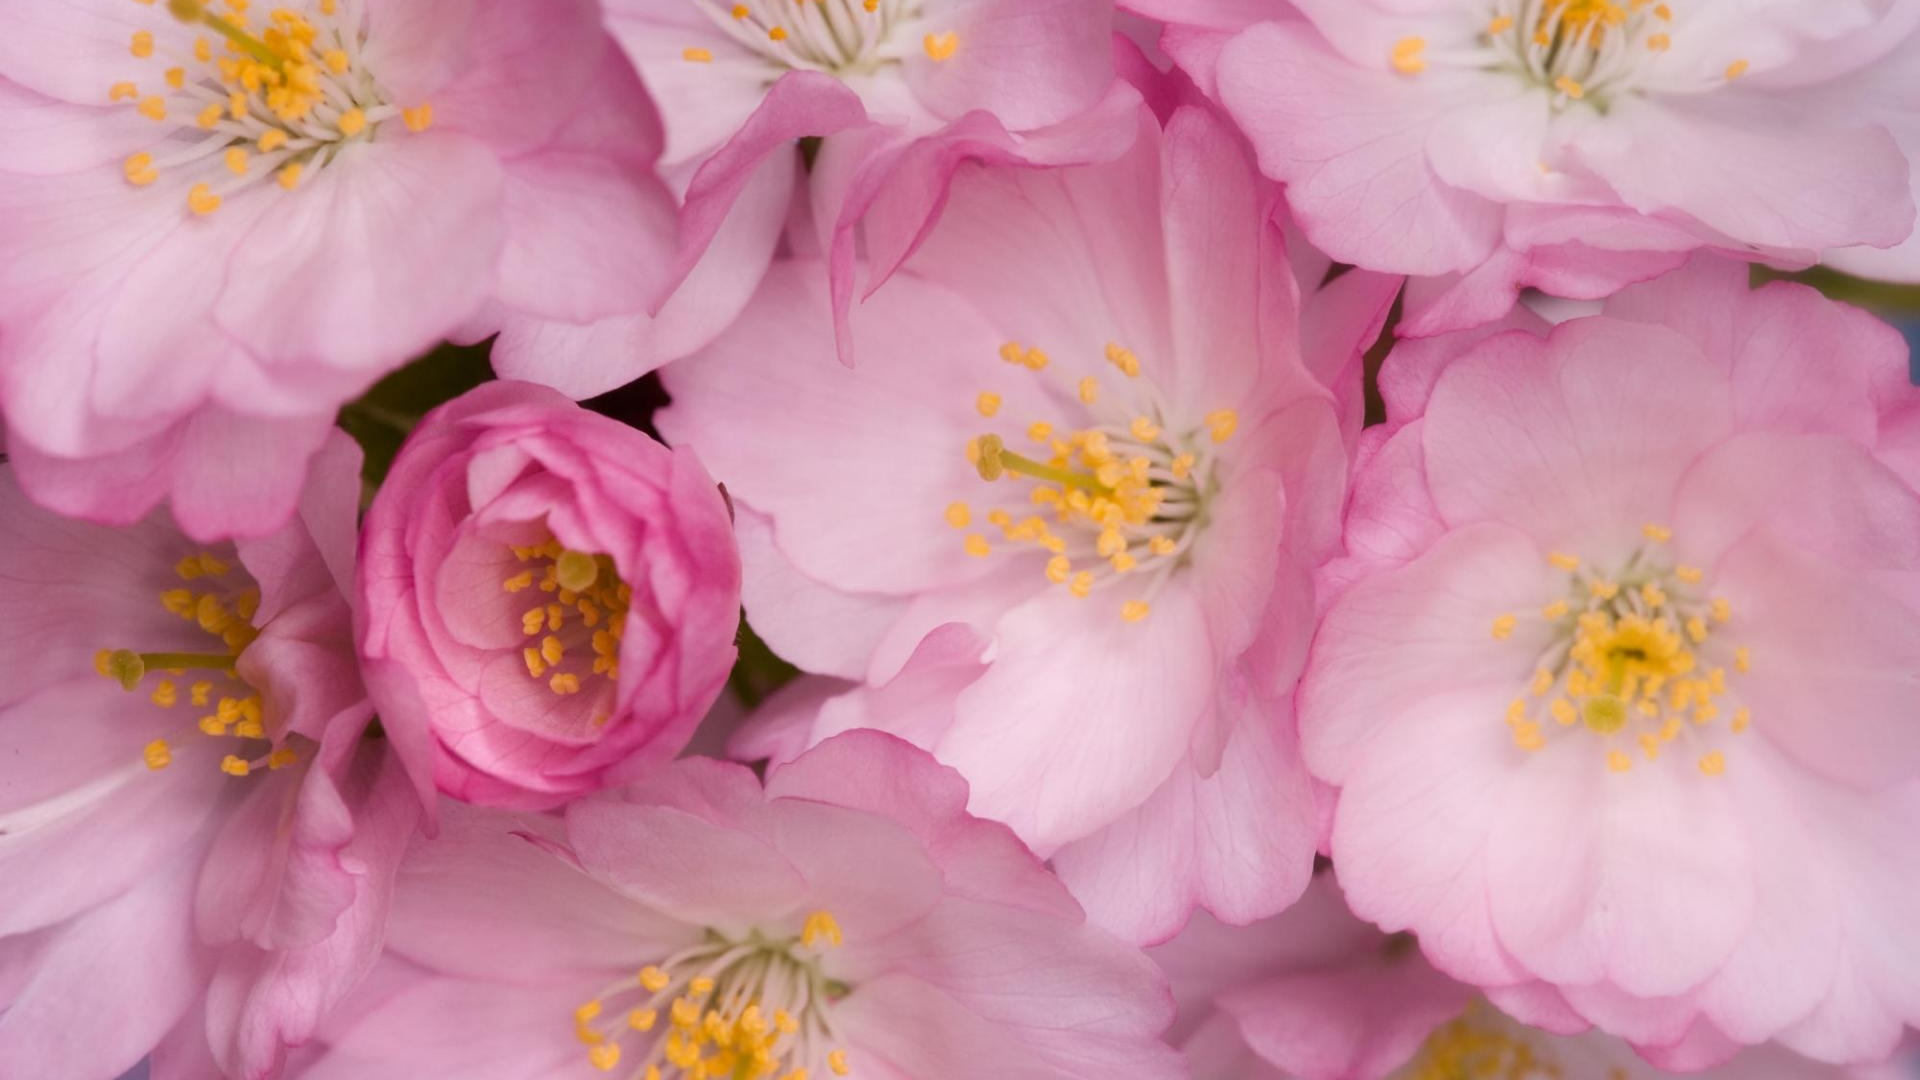 Download Wallpaper 1920x1080 Wild Roses Flowers Pink Yellow Full